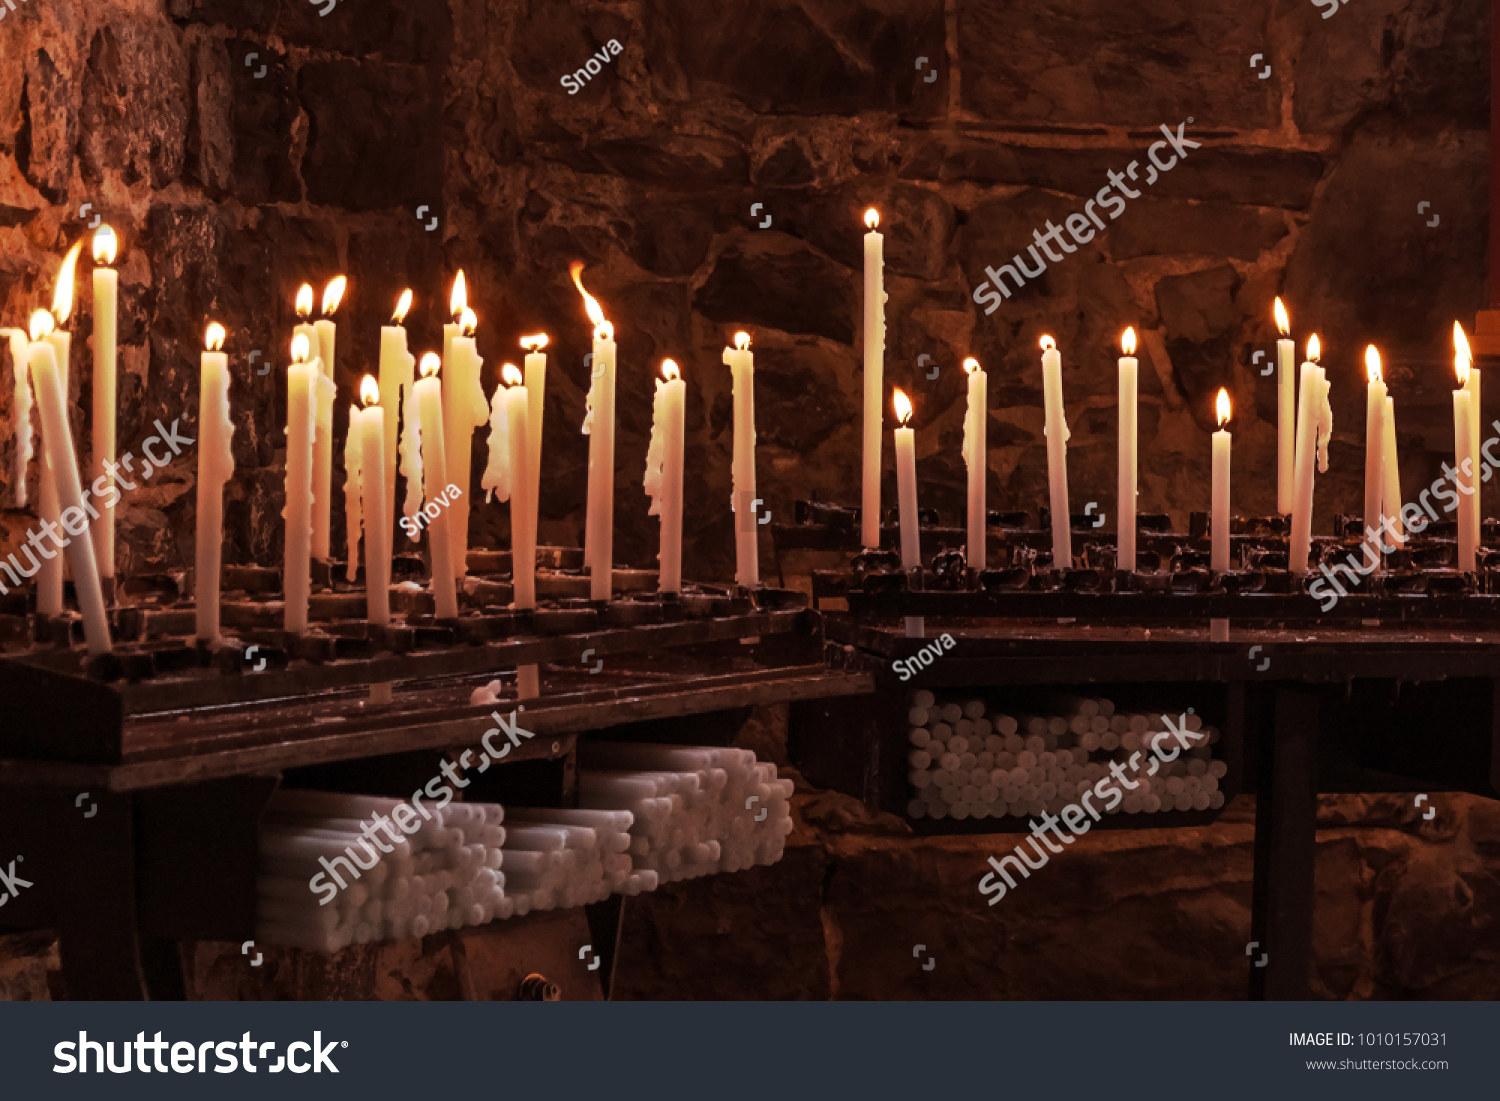 Long burning wax candles in the church